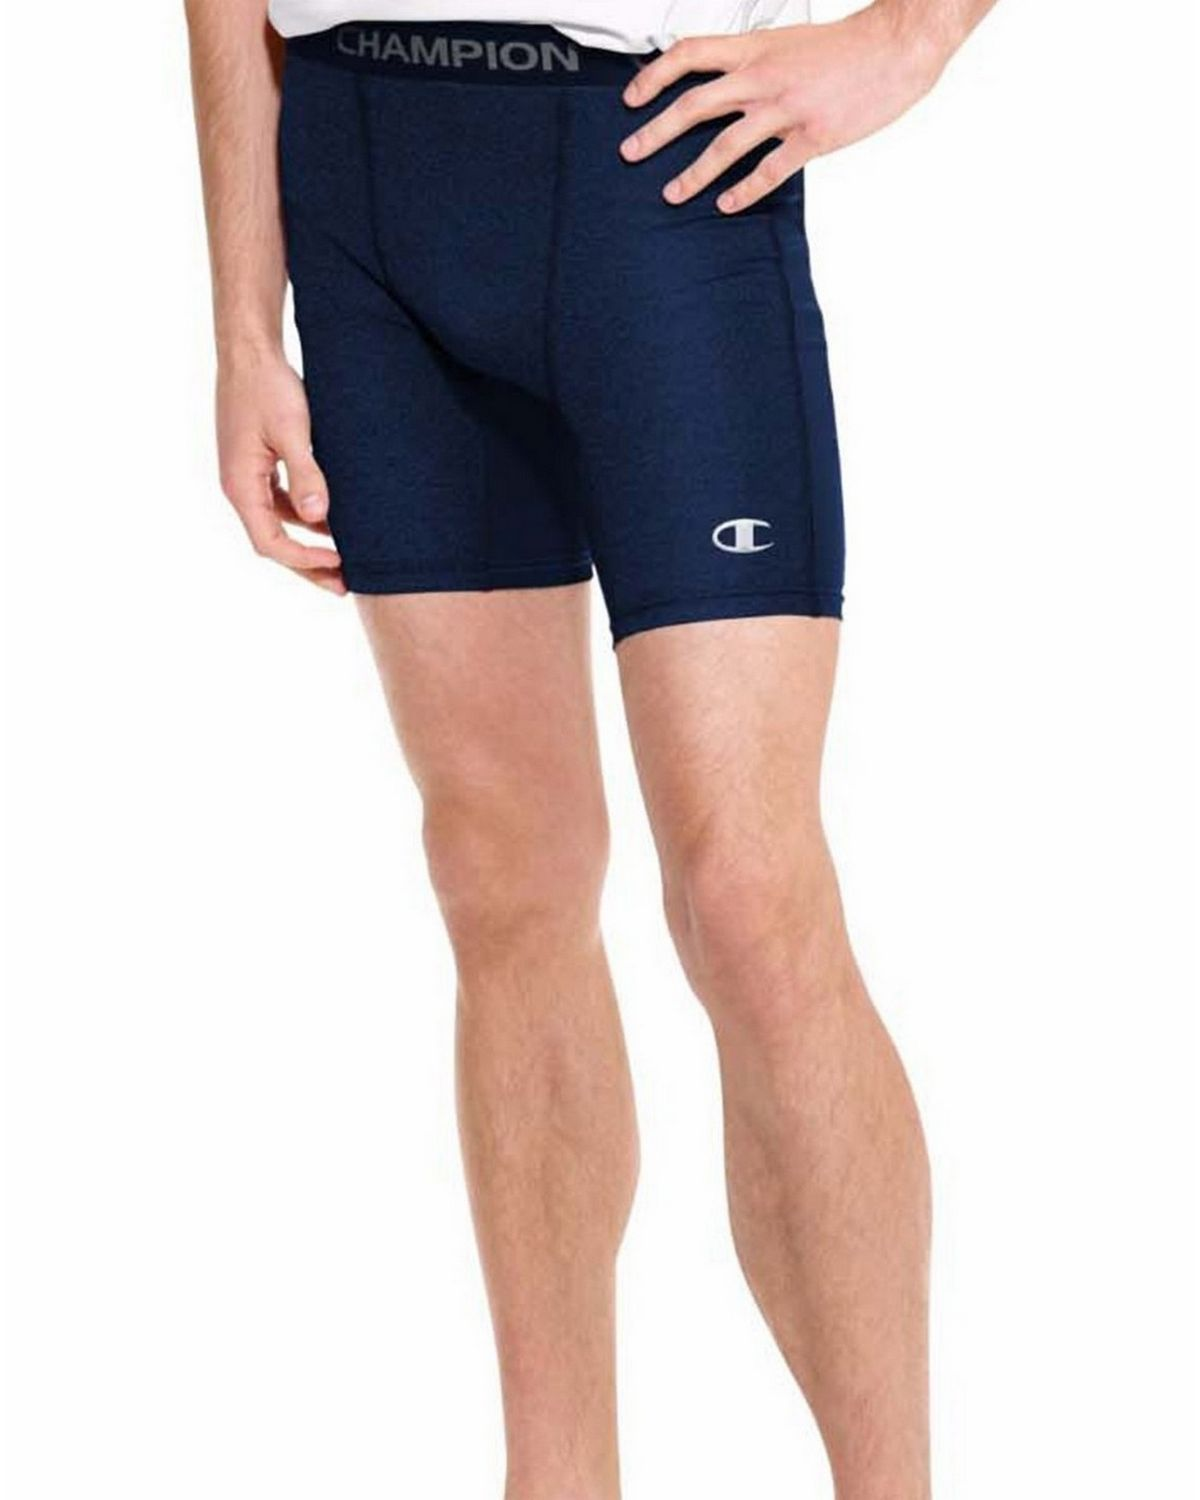 Champion 87294 PowerTrain PowerFlex Solid Compression Shorts - Navy - S 87294